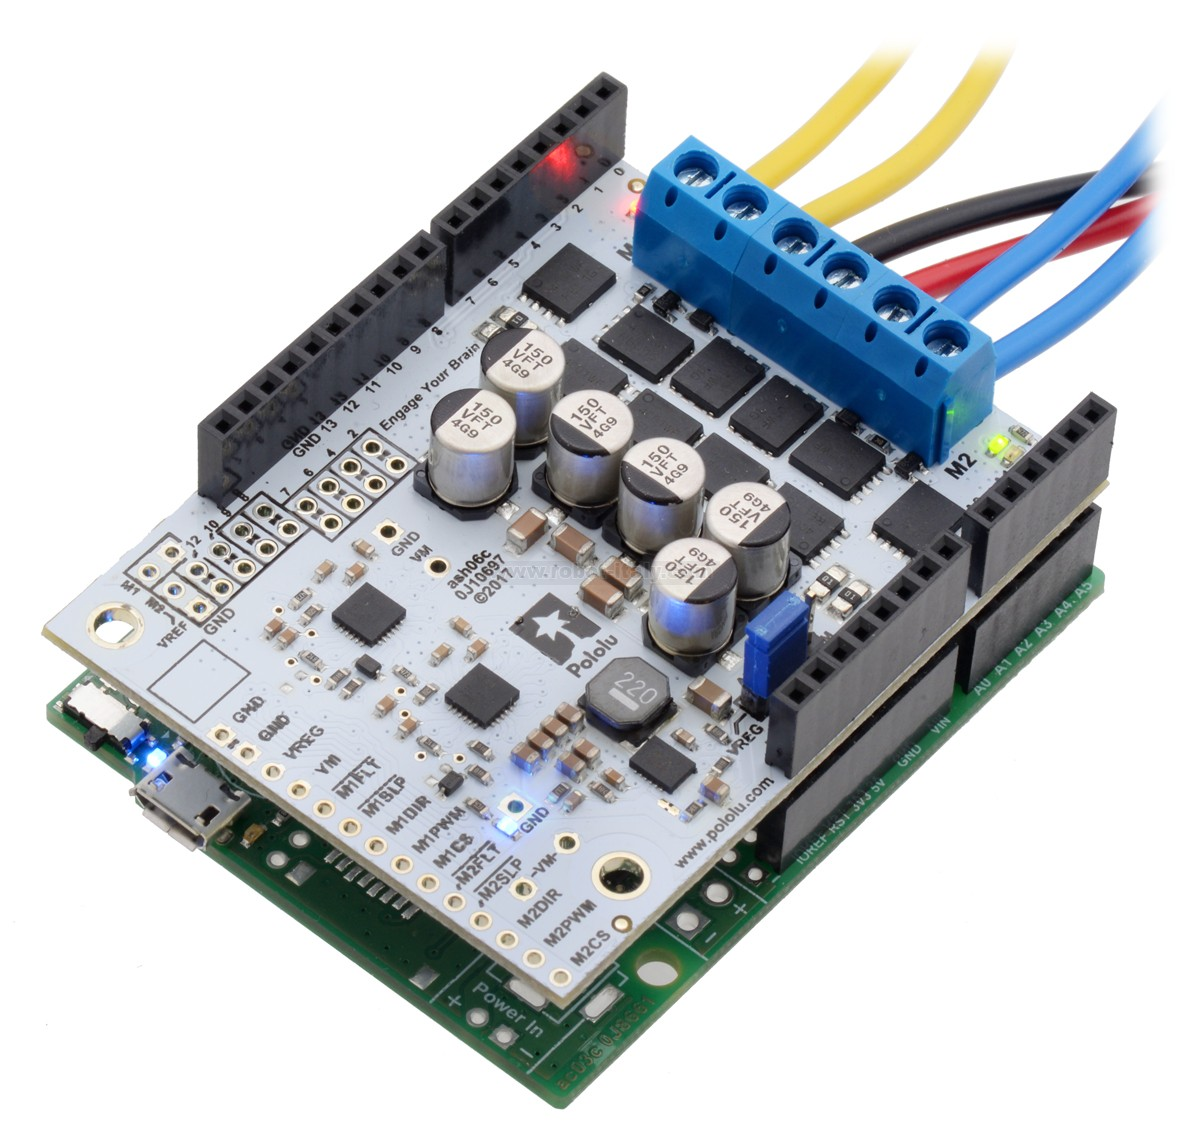 Pololu dual g high power motor driver